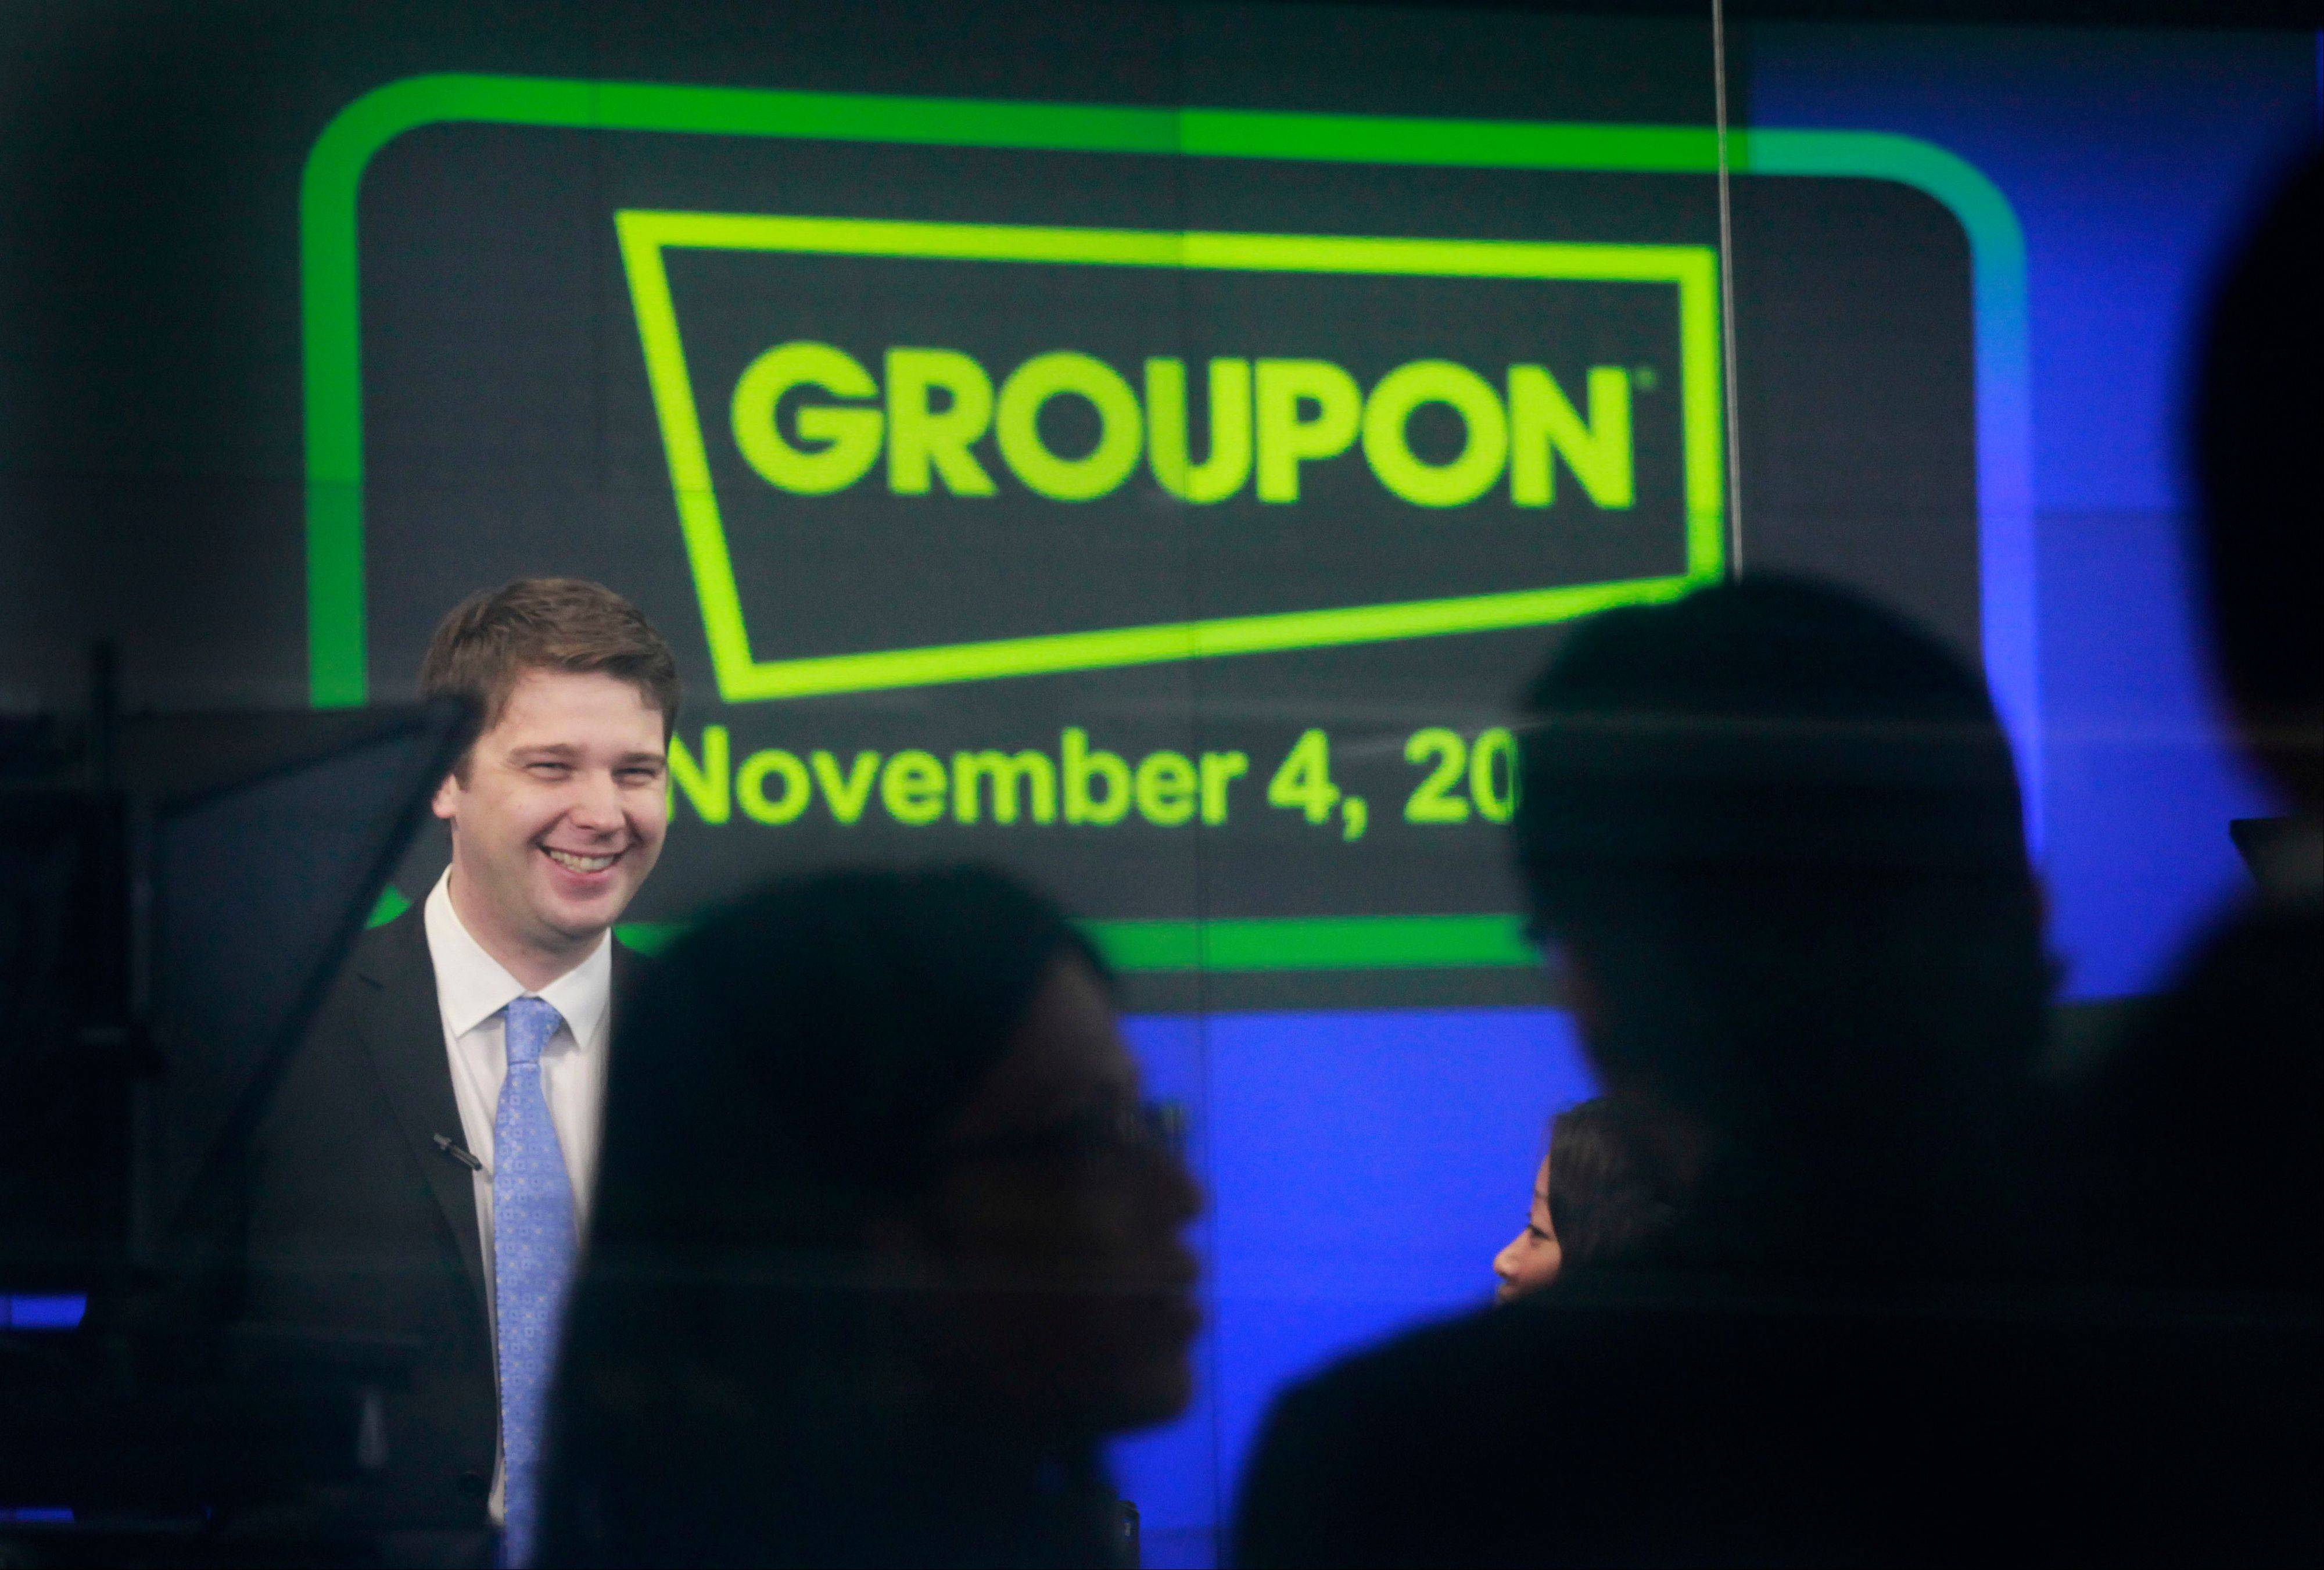 Andrew Mason, founder and CEO of Groupon, is seen on the day of his company's IPO, Nov. 4, 2011, in New York. Groupon's stock jumped nearly 50 percent in the opening minutes that day. But it has been a long downhill fall since then. Mason was fired Thursday.